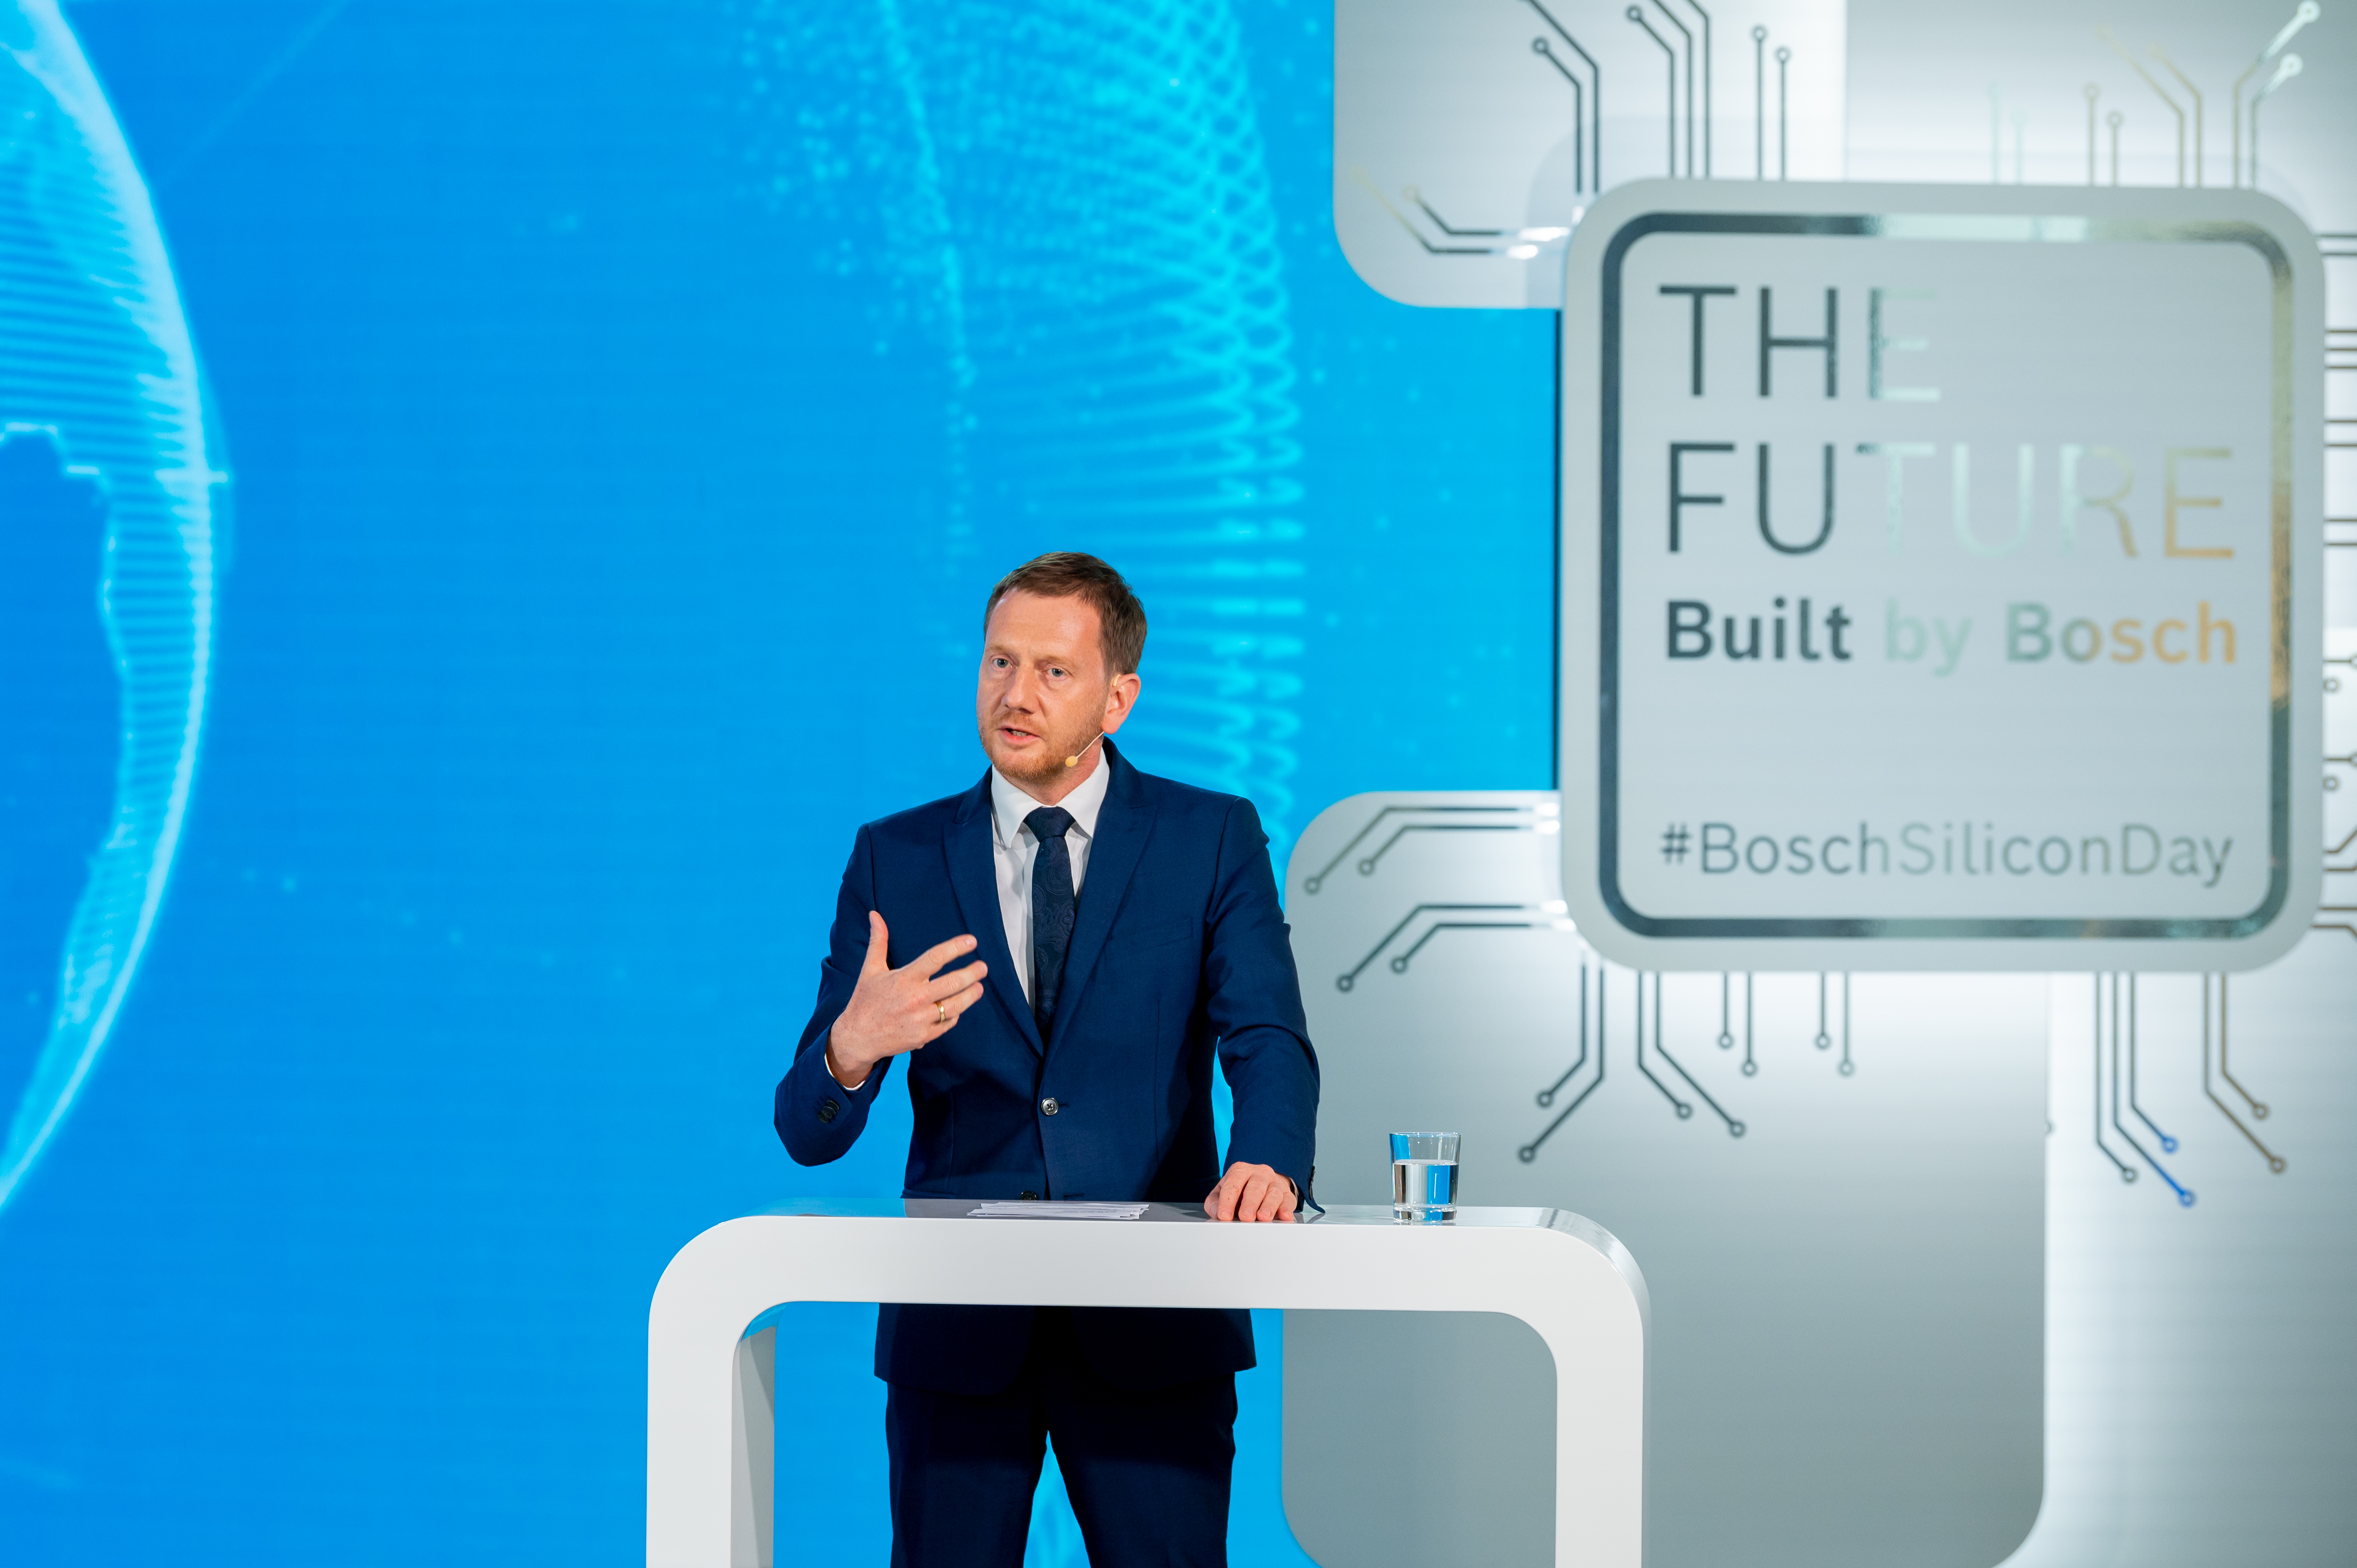 Bosch opens chip factory of the future in Dresden: Michael Kretschmer, Minister-President of Saxony